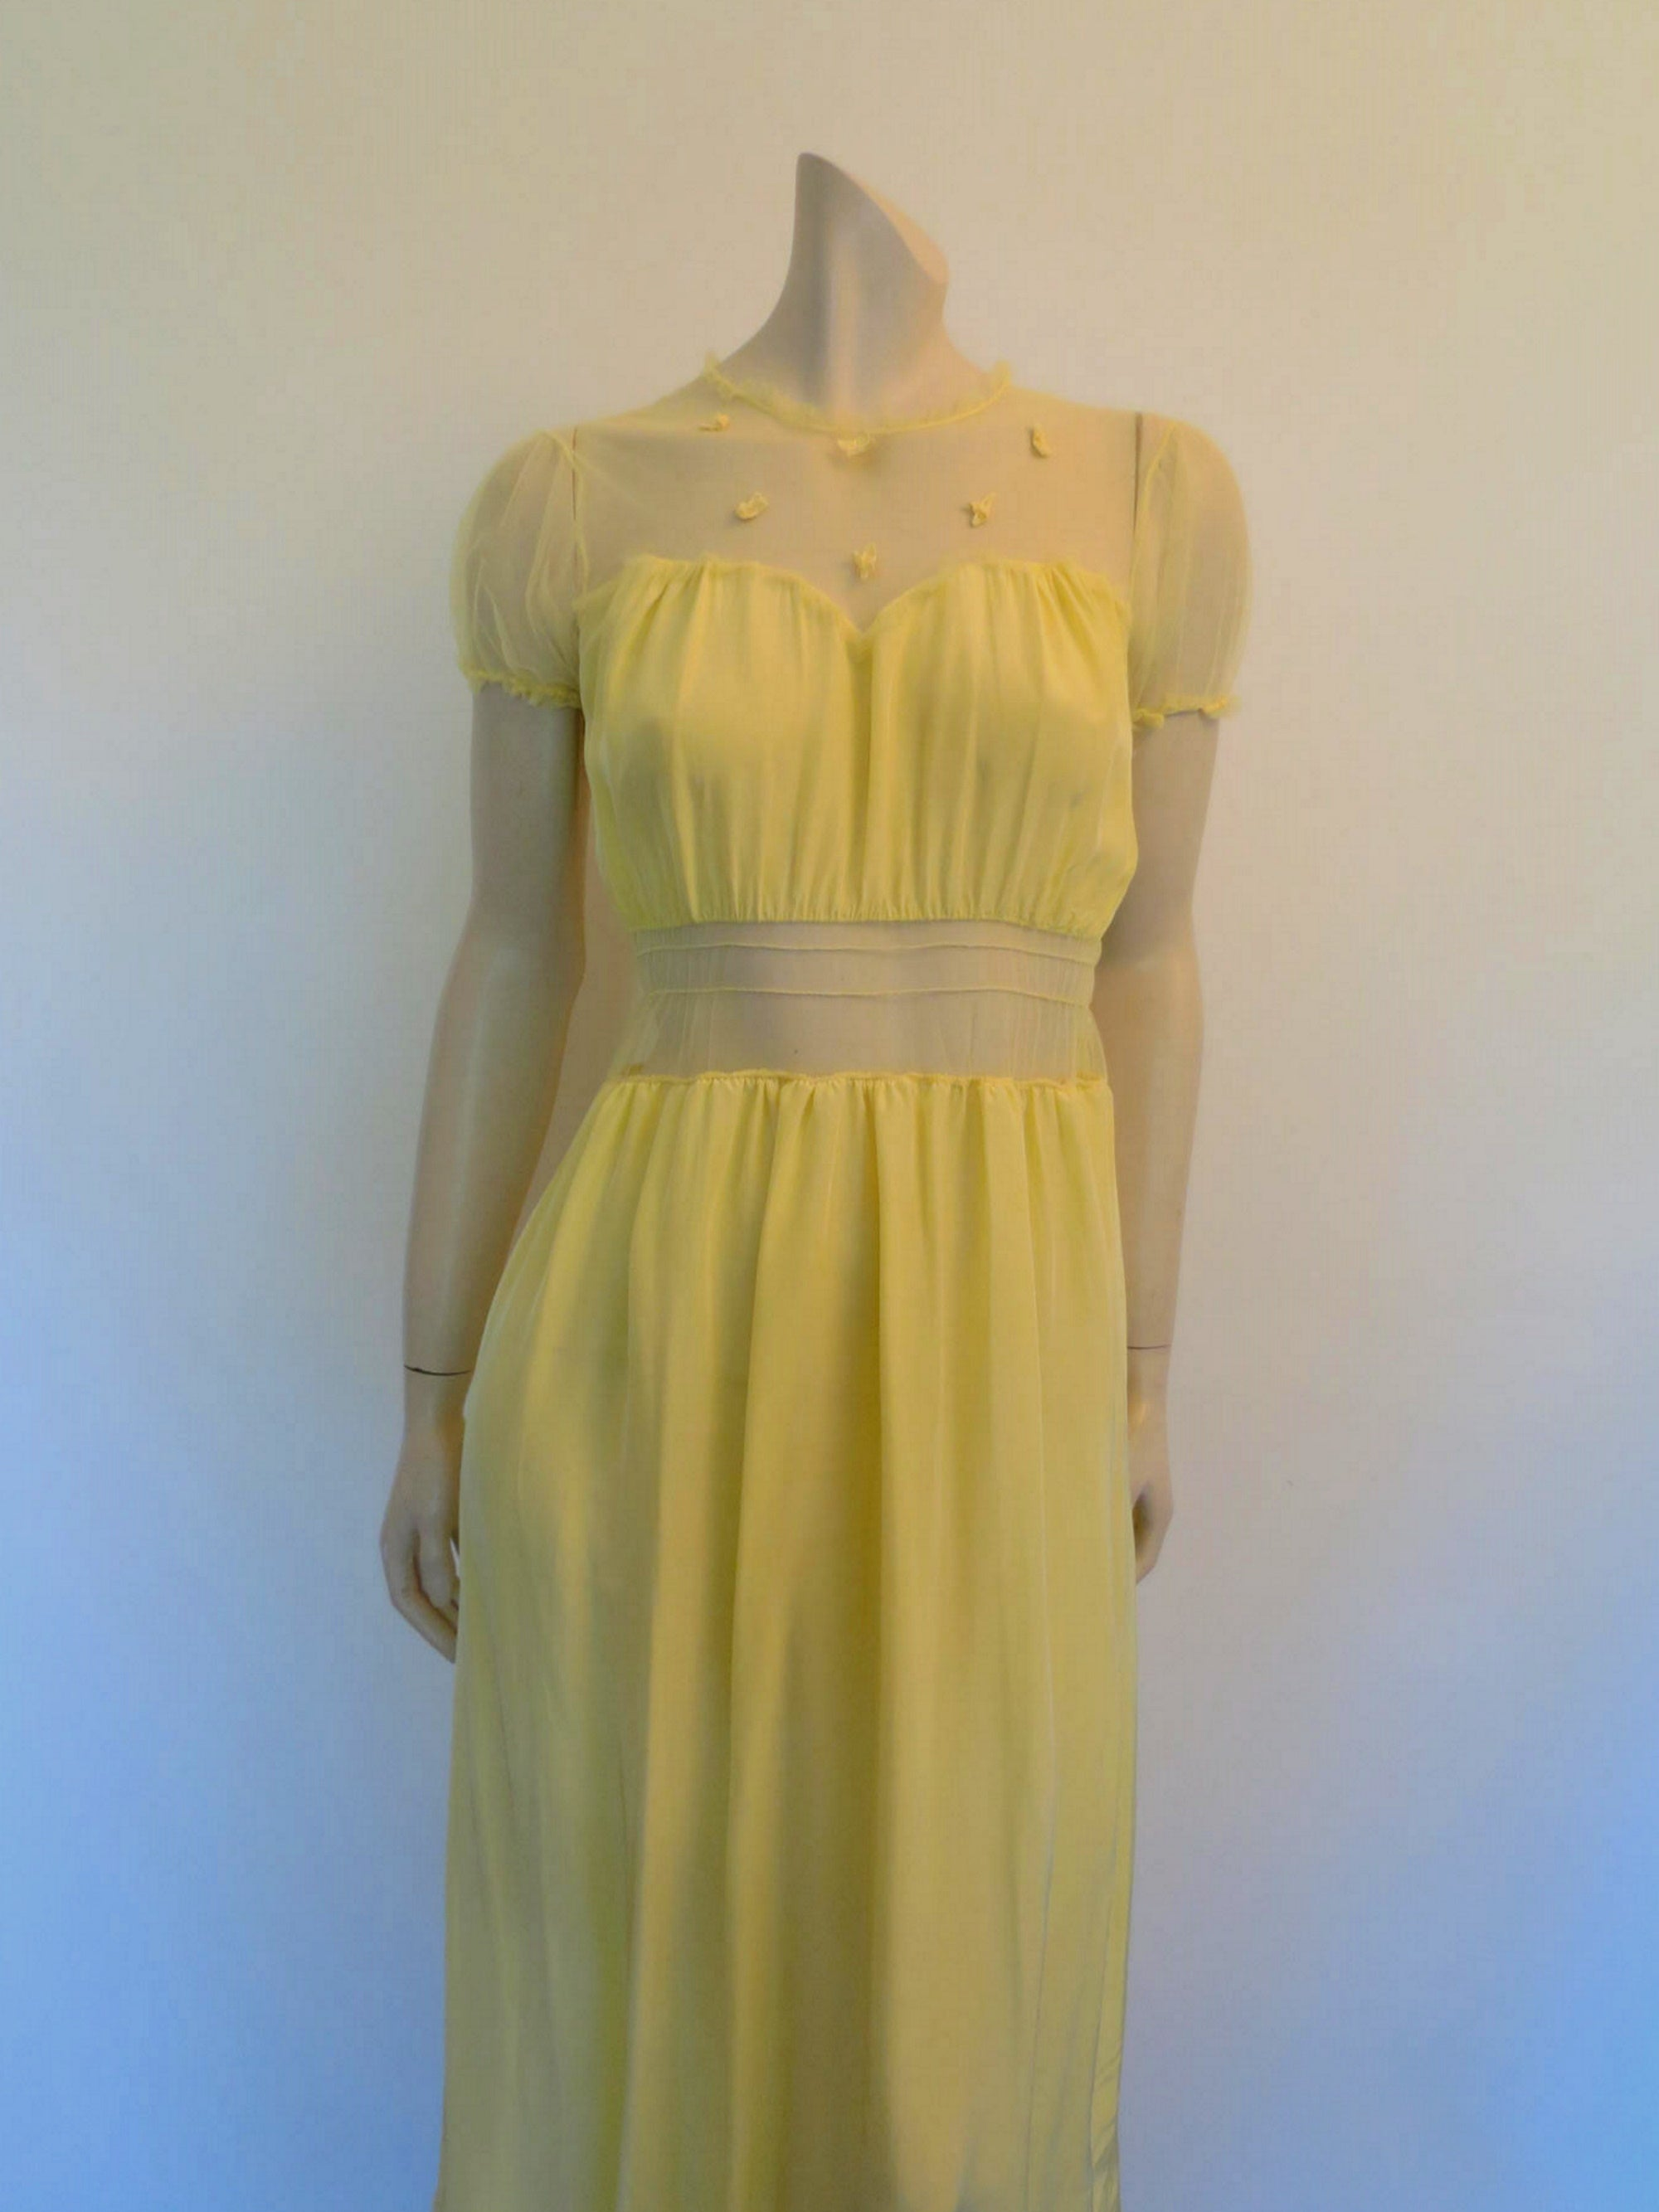 1940s vintage yellow nightgown with mesh yoke and midriff